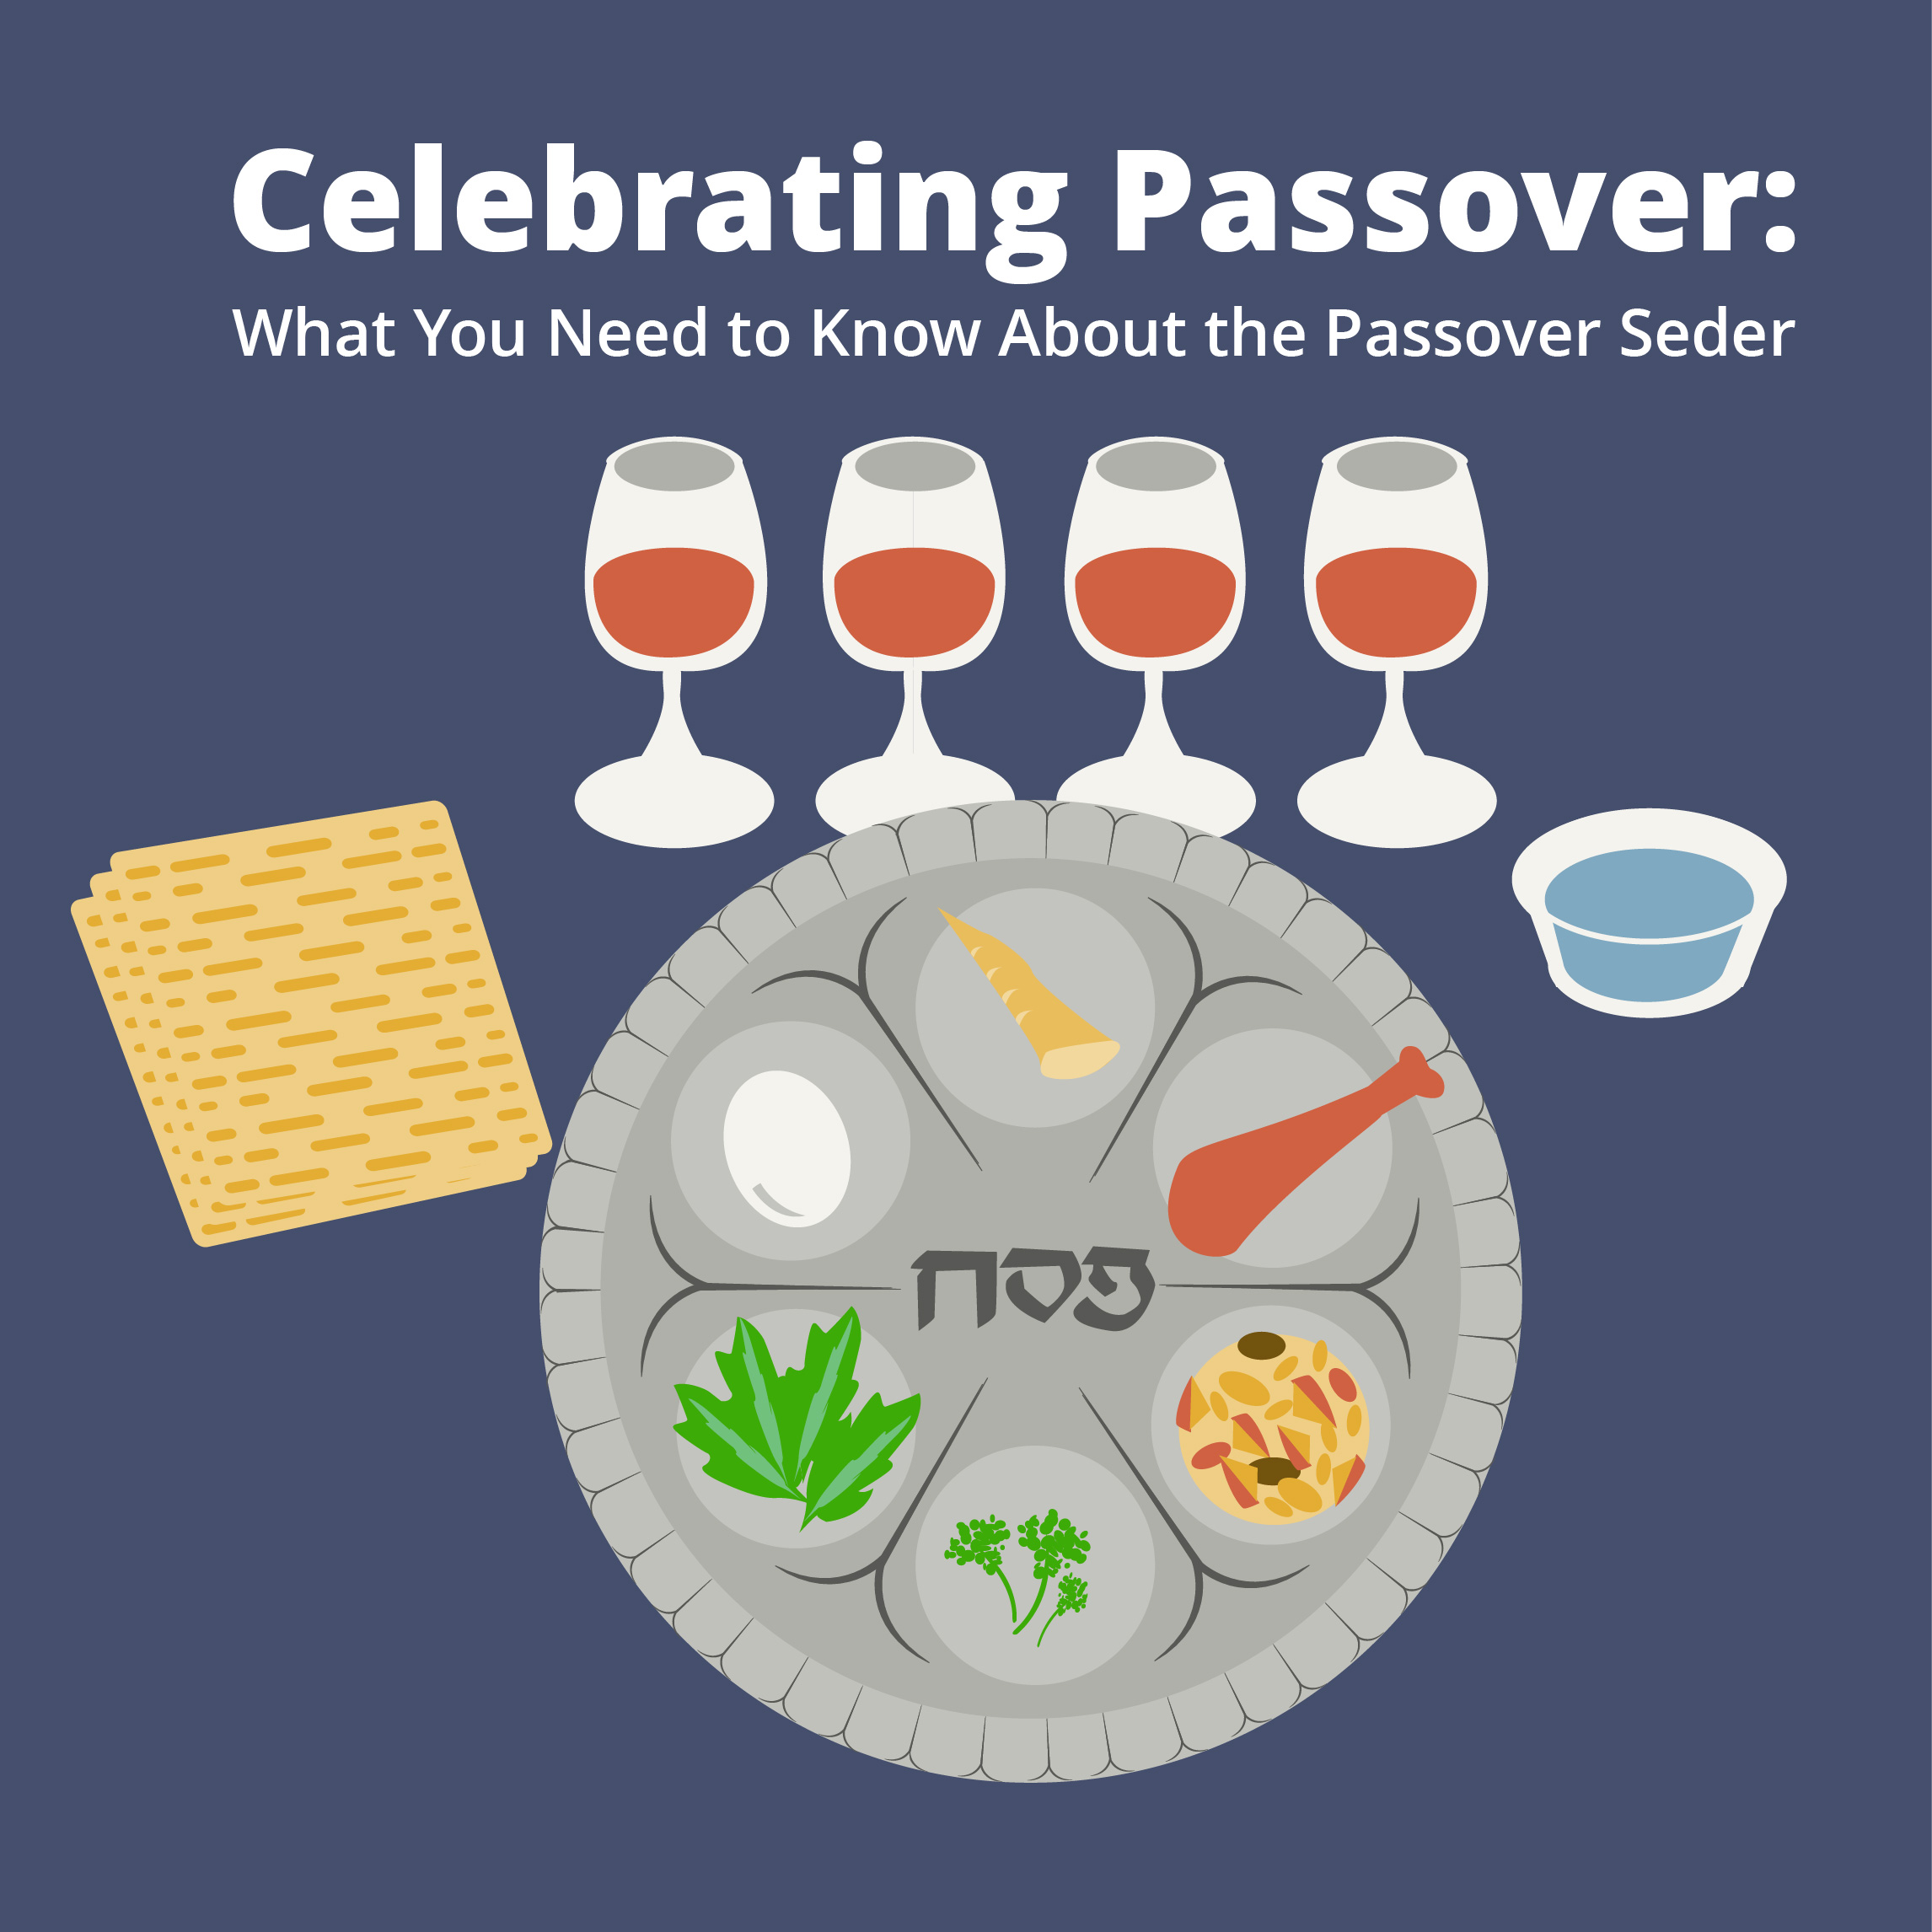 50 Beautiful Passover Greeting Pictures And Images